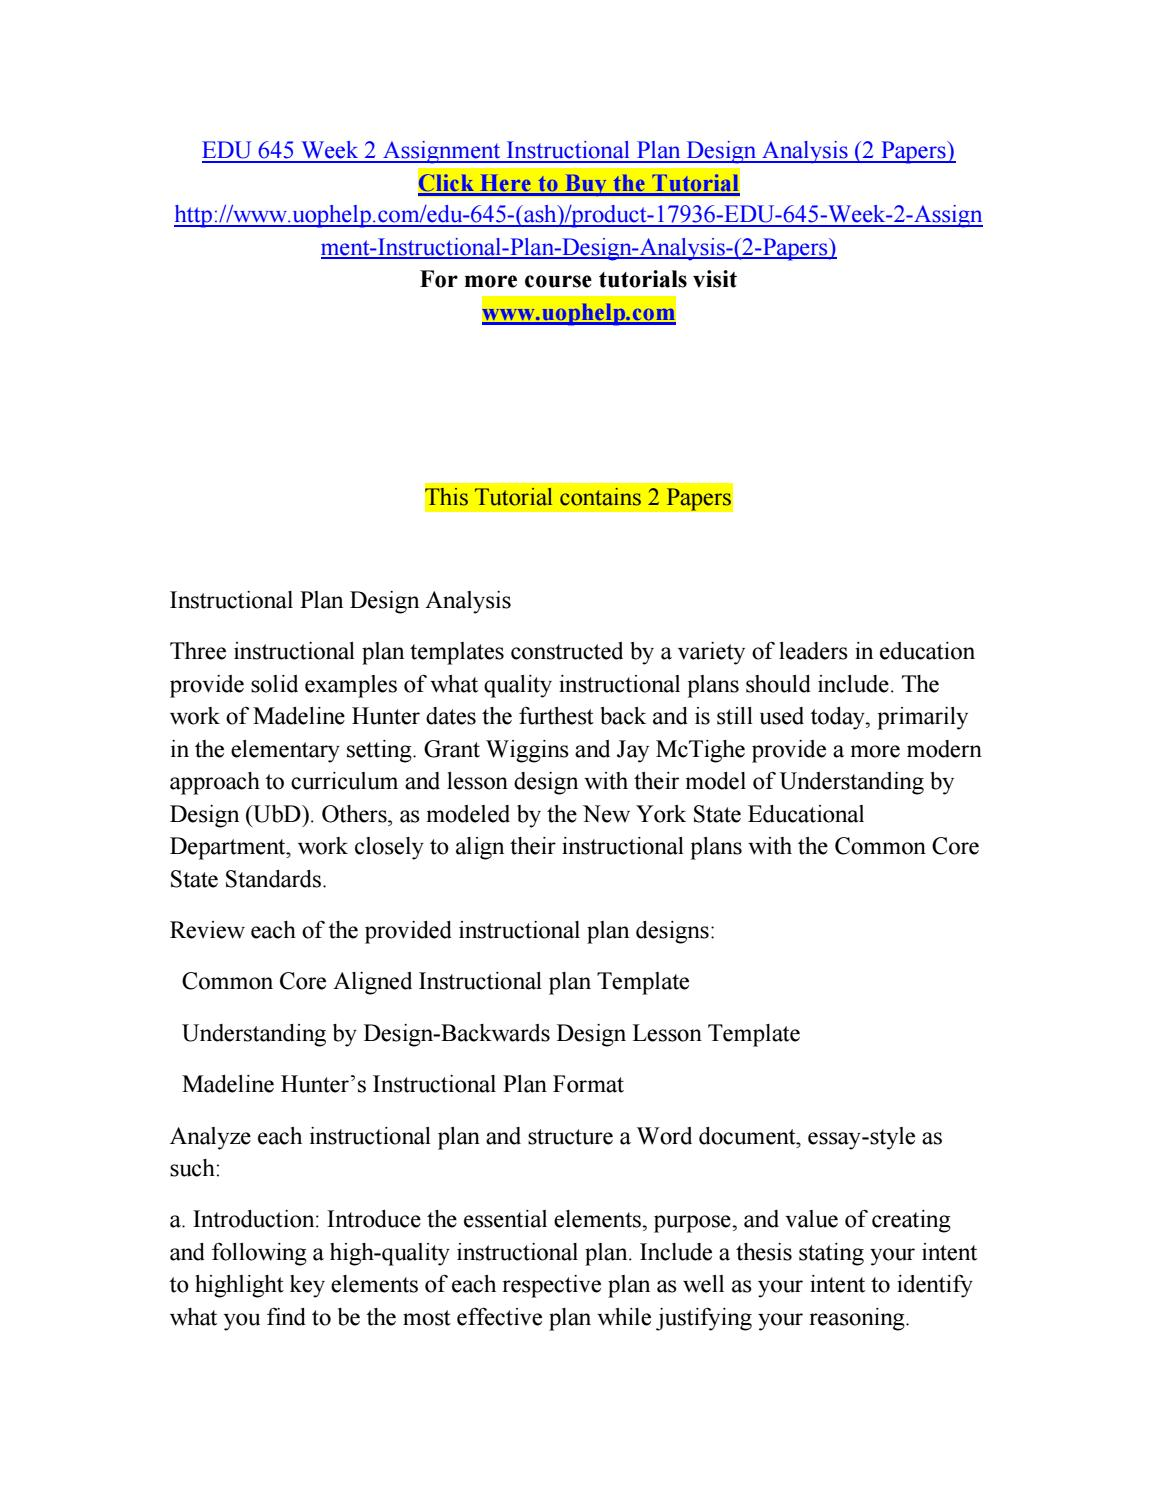 Edu 645 Week 2 Assignment Instructional Plan Design Analysis 2 Papers By Bluebell772 Issuu